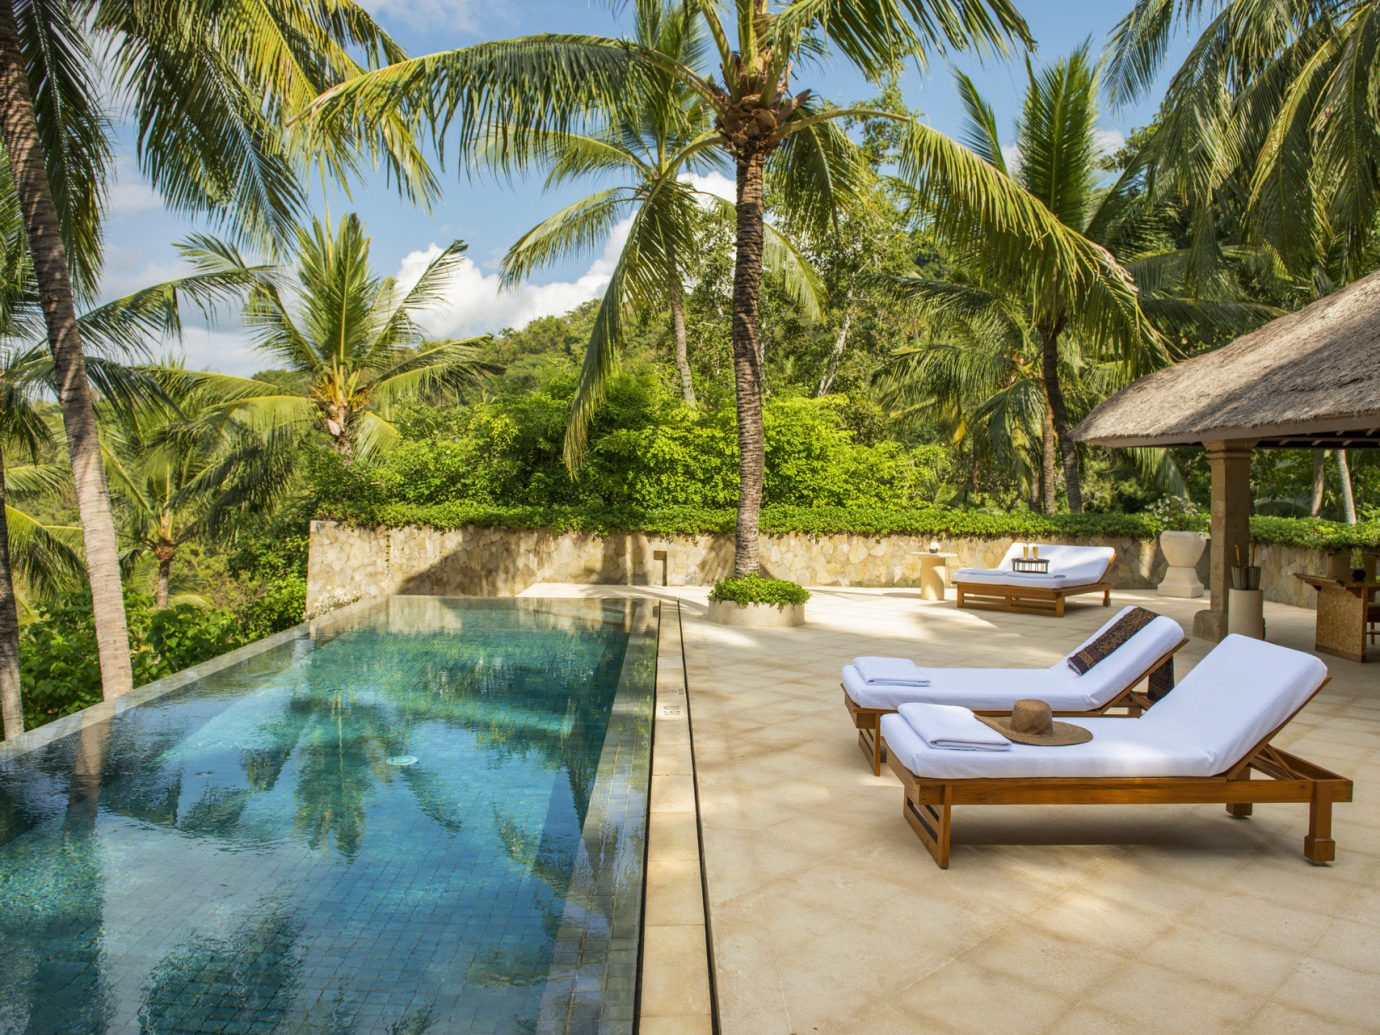 Health Wellness Hotels Tree Outdoor Swimming Pool Leisure Property Resort Estate Vacation Palm Villa Backyard